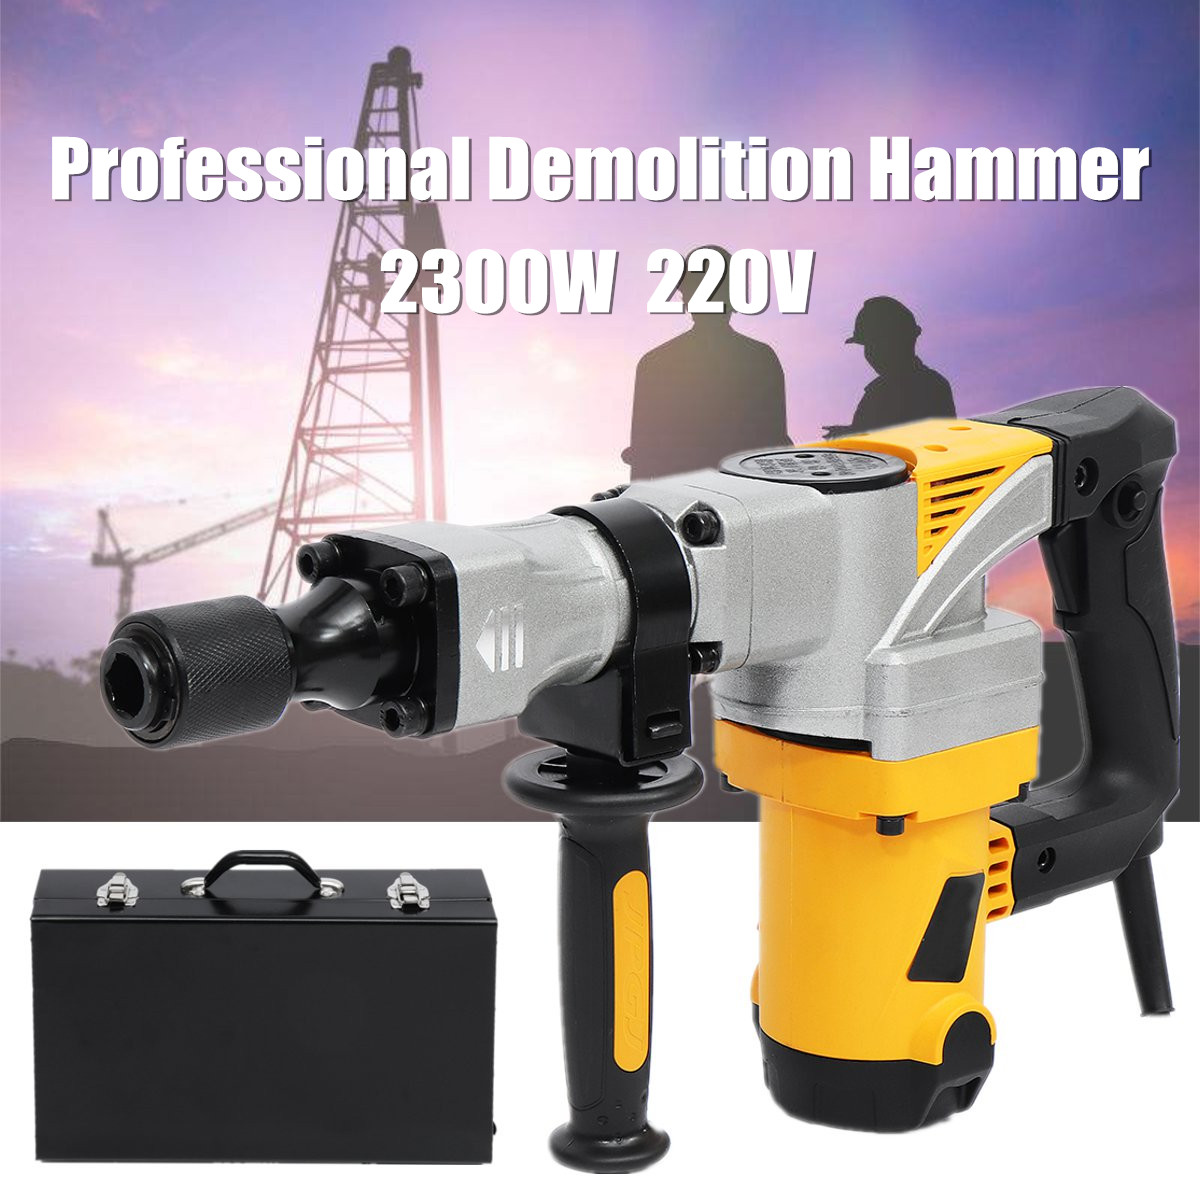 Impact Demolition Hammer 2300W Professional Electric Hammer Concrete Drill Breaker Industrial Power Tools Kit Slotting Machine